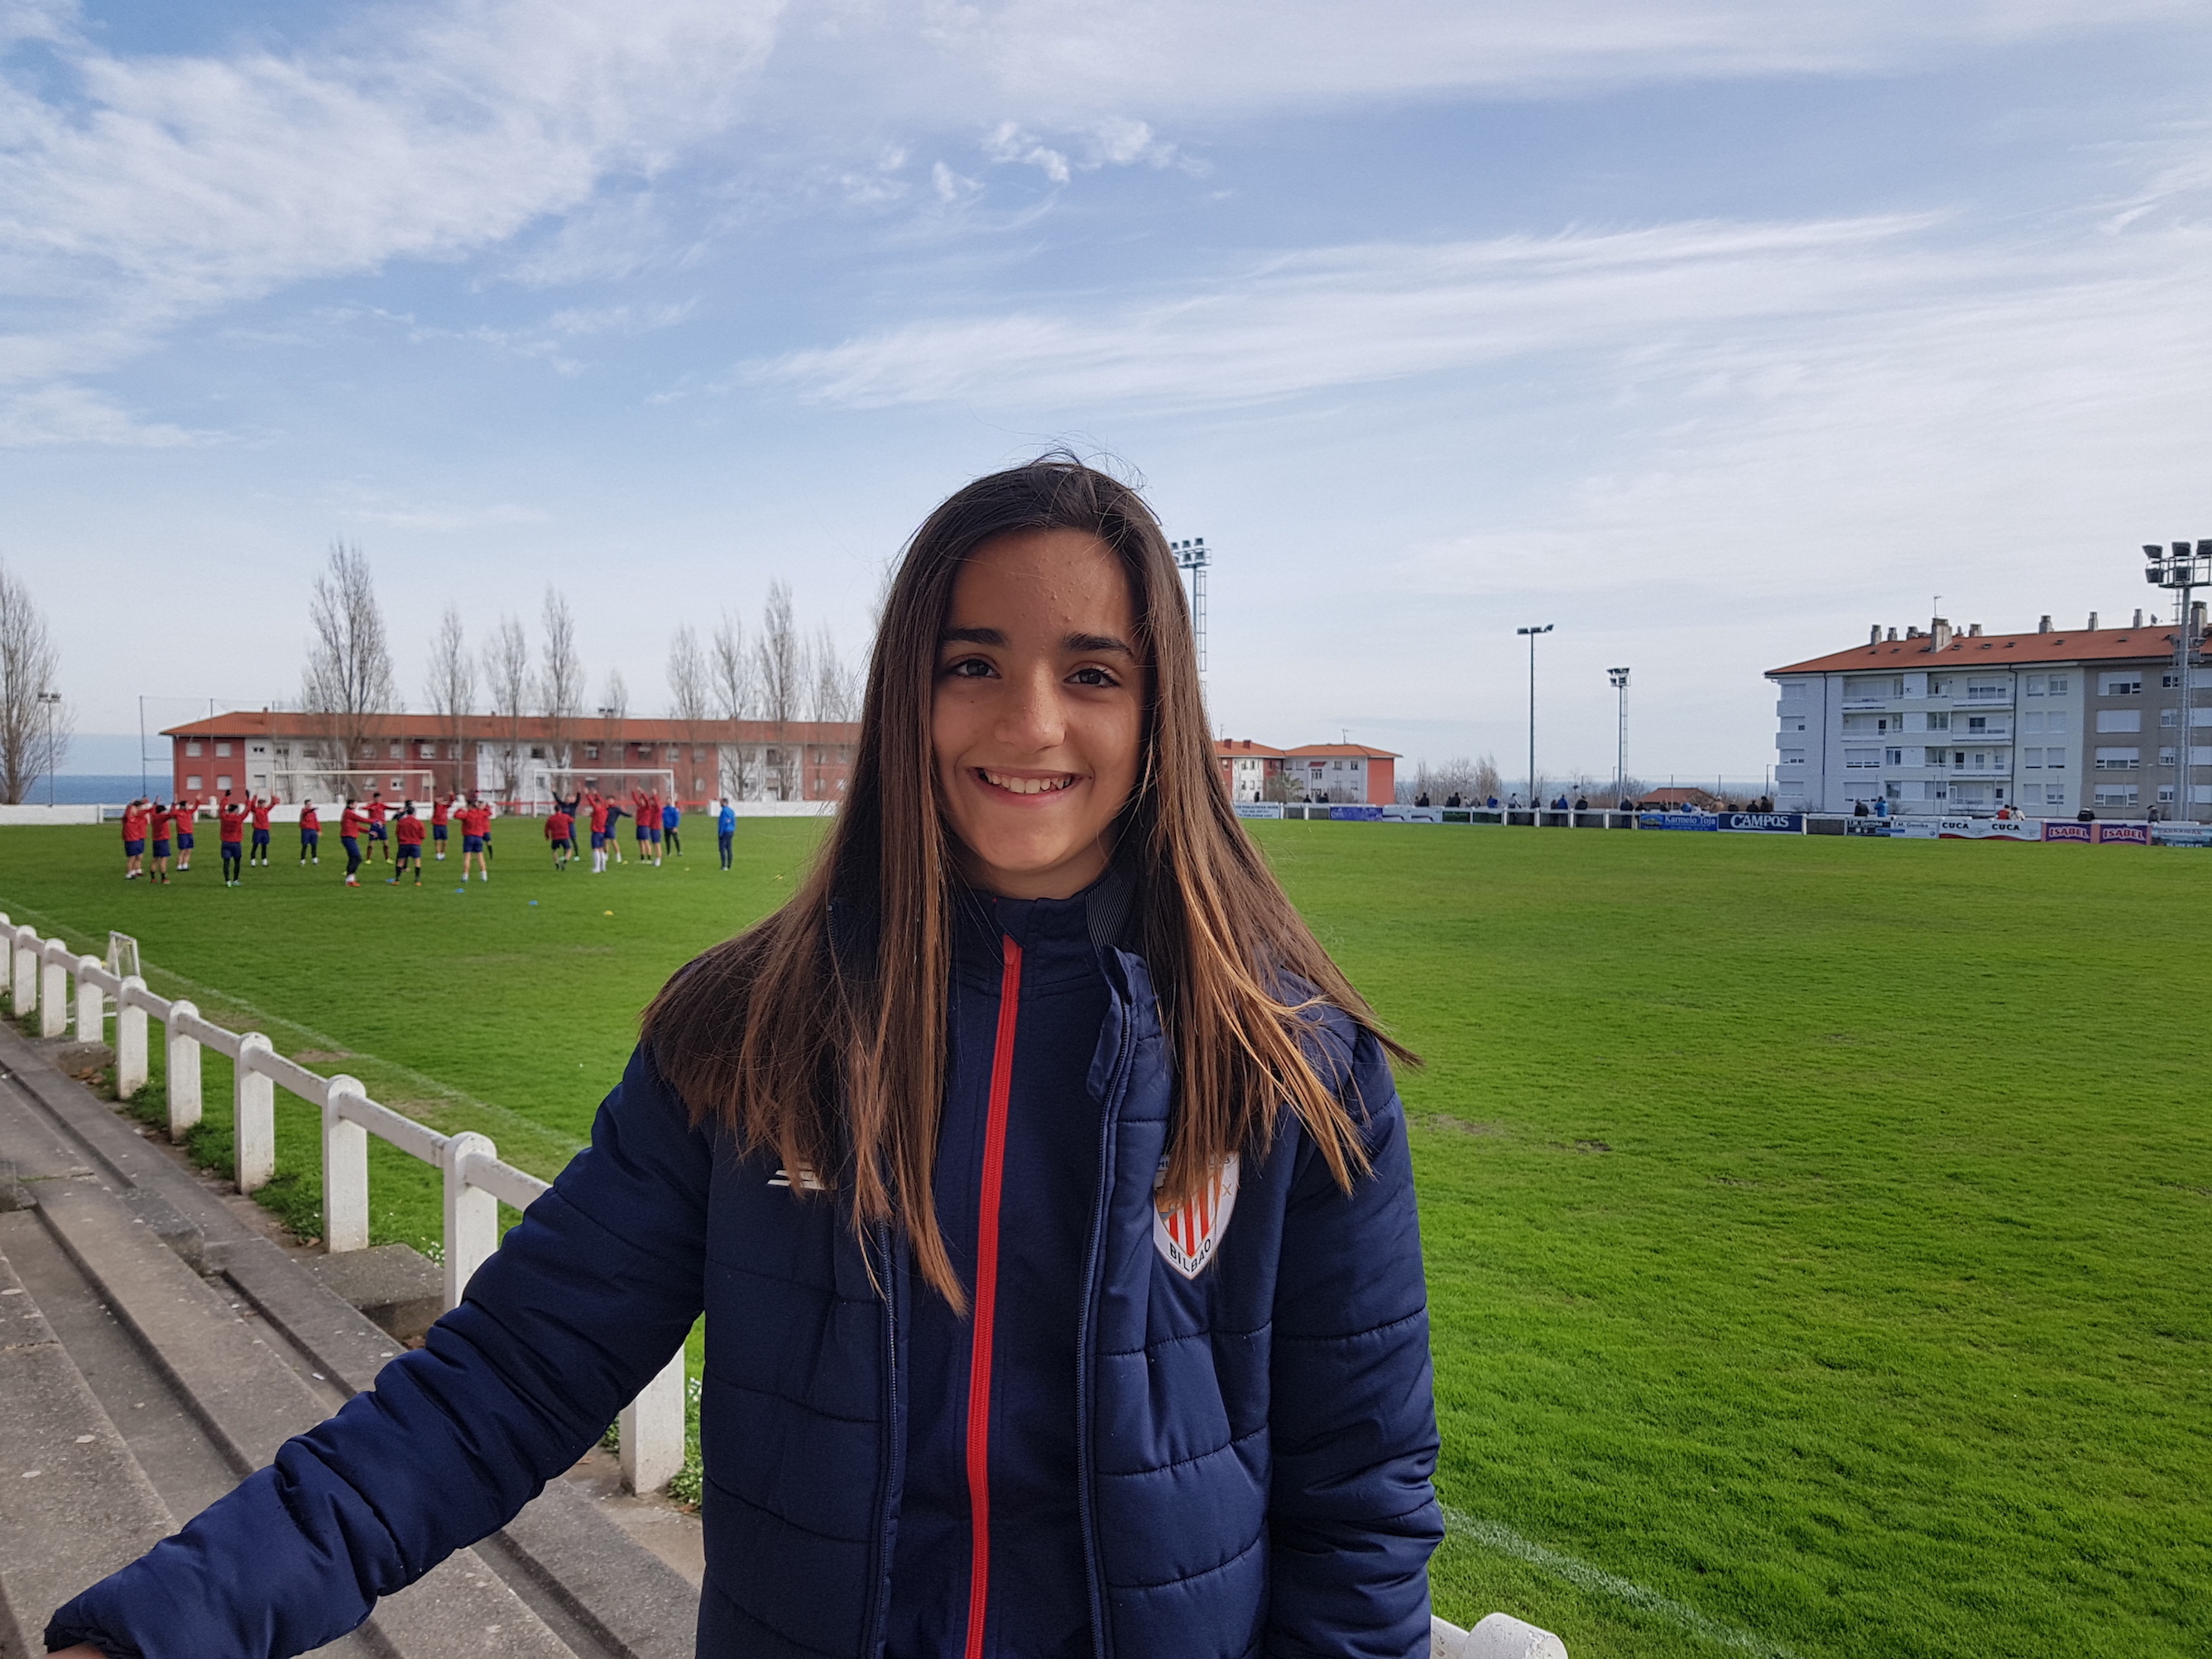 Joana Athletic Bermeo